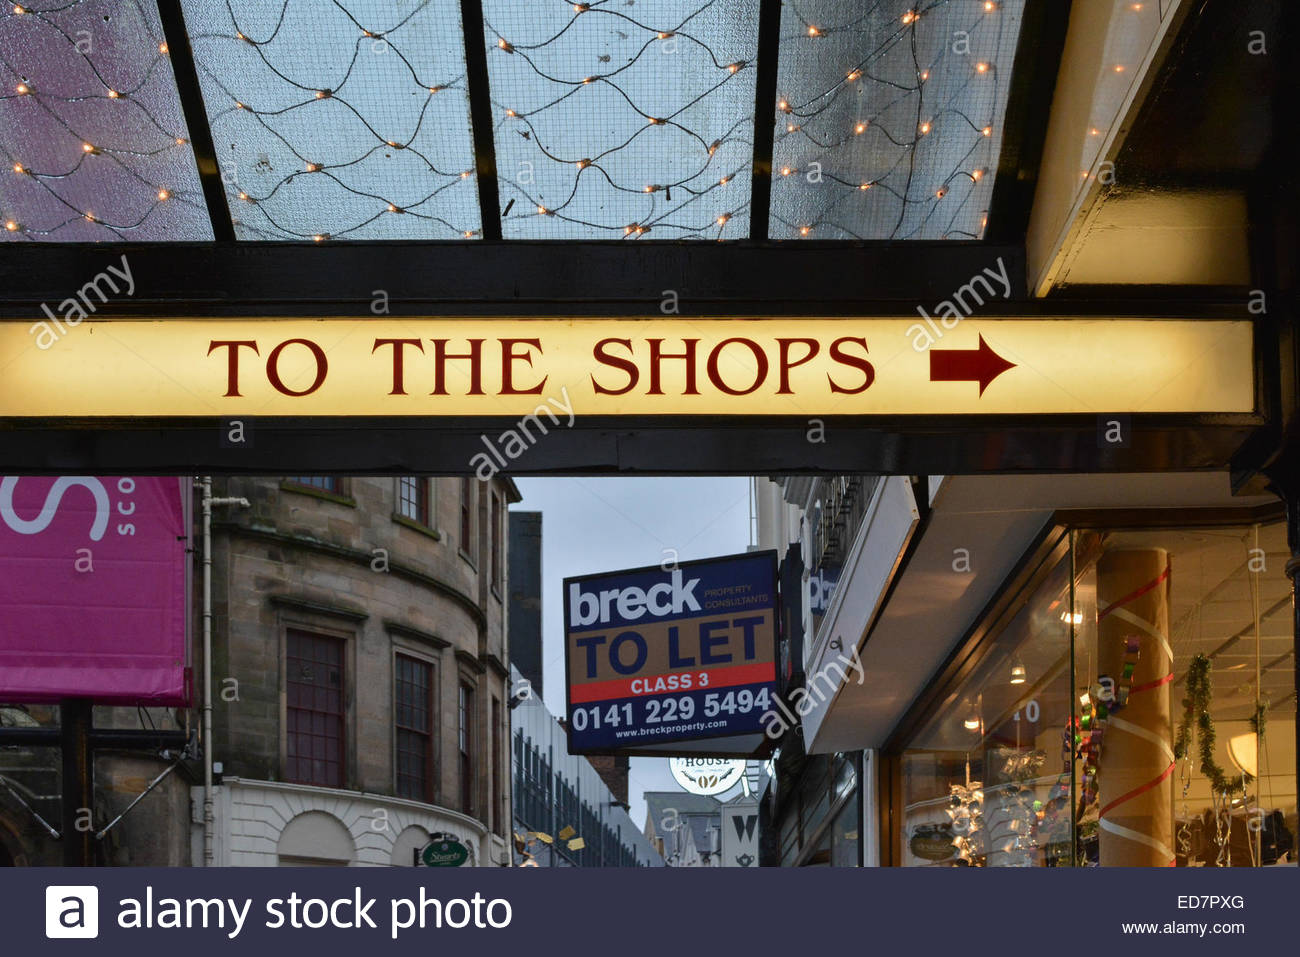 traditional 'TO THE SHOPS' sign and arrow pointing to The Stirling Arcade, King Street, Stirling, Scotland, - Stock Image